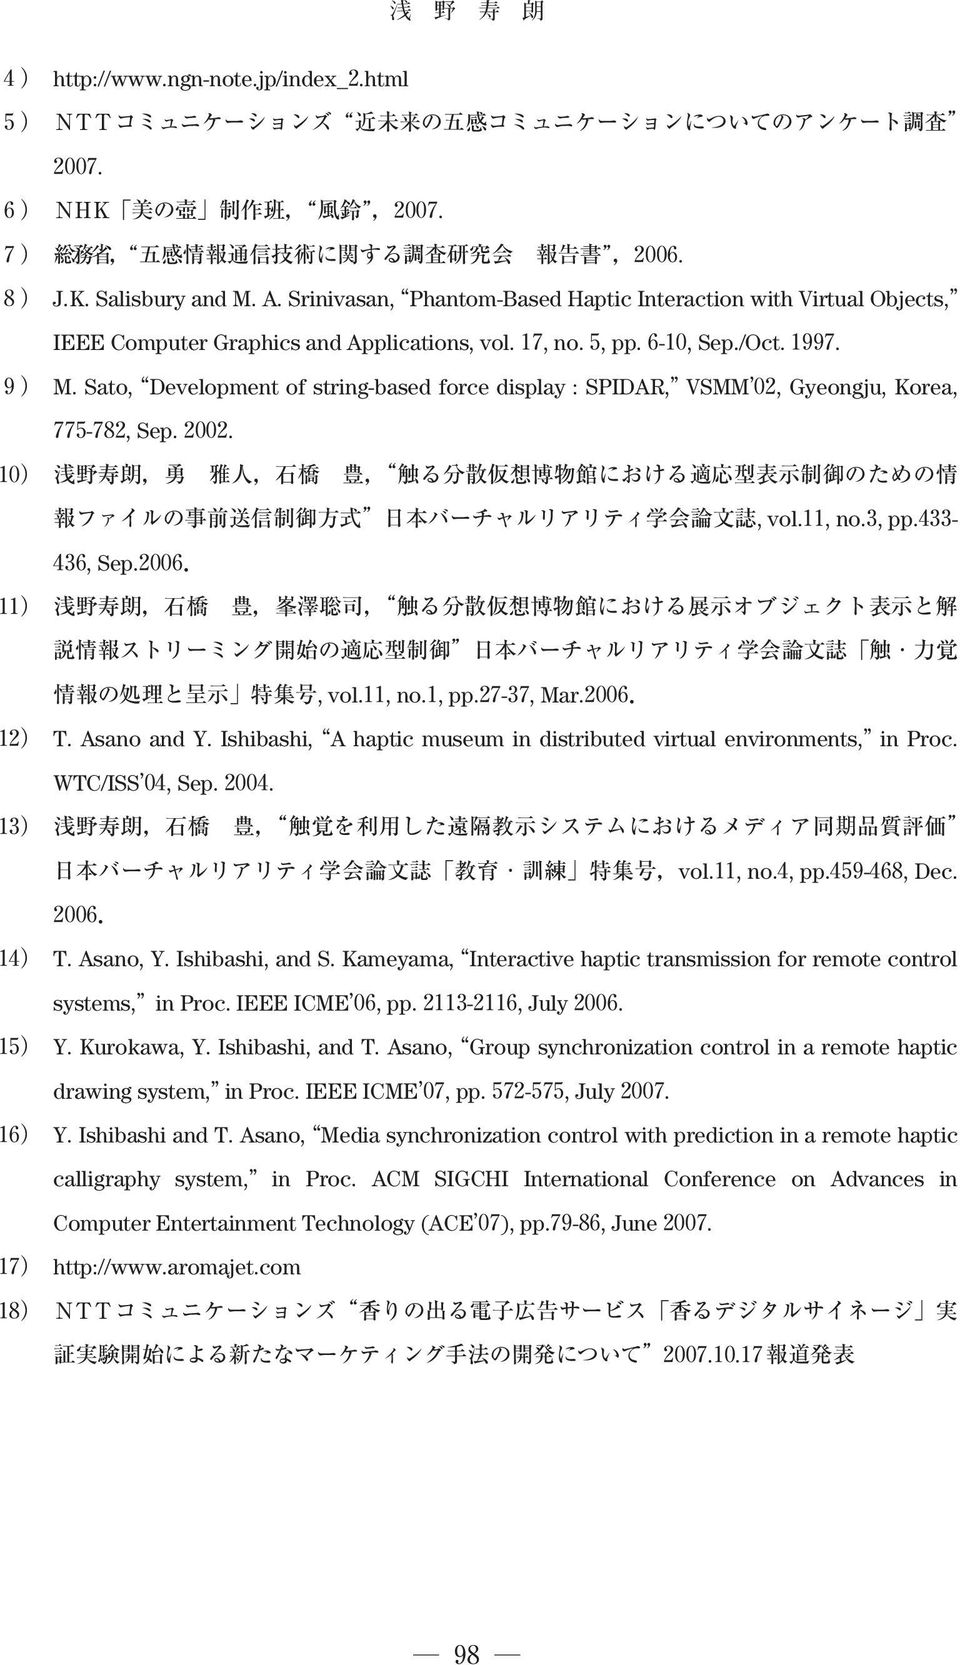 27-37, Mar.2006 12 T. Asano and Y. Ishibashi, A haptic museum in distributed virtual environments, in Proc. WTC/ISS 04, Sep. 2004. 13 vol.11, no.4, pp.459-468, Dec. 2006 14 T. Asano, Y.